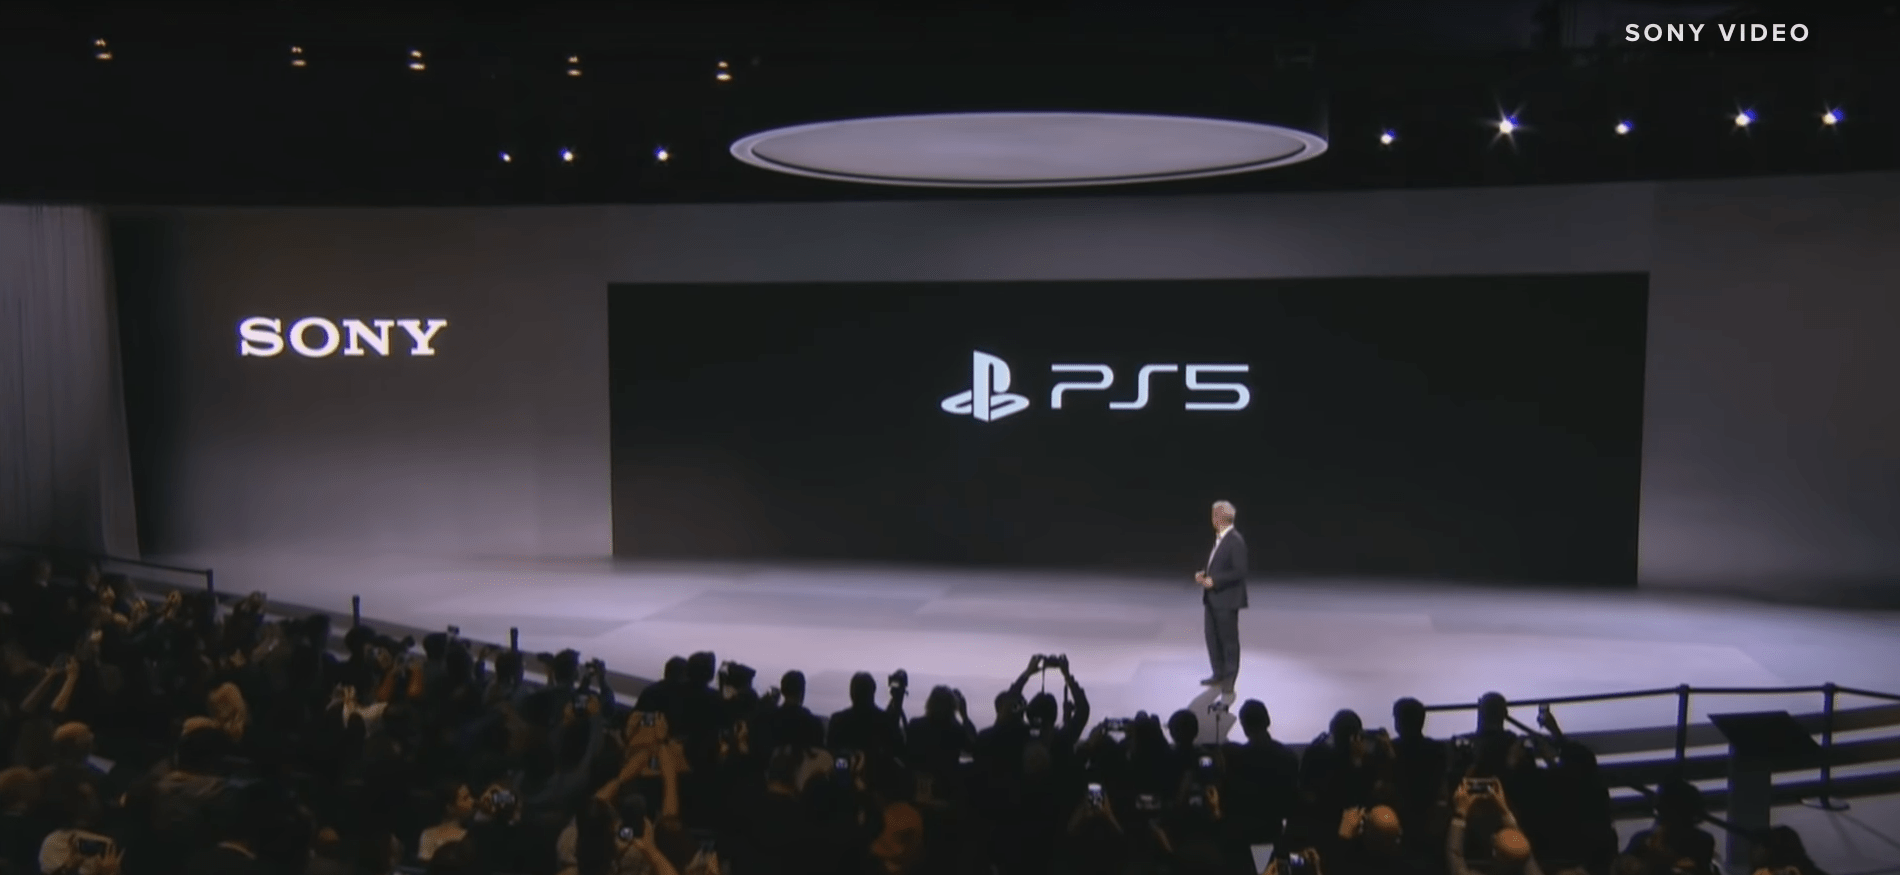 Sony Possibly Building Up to PlayStation 5 Launch for Upcoming Experience PlayStation Event